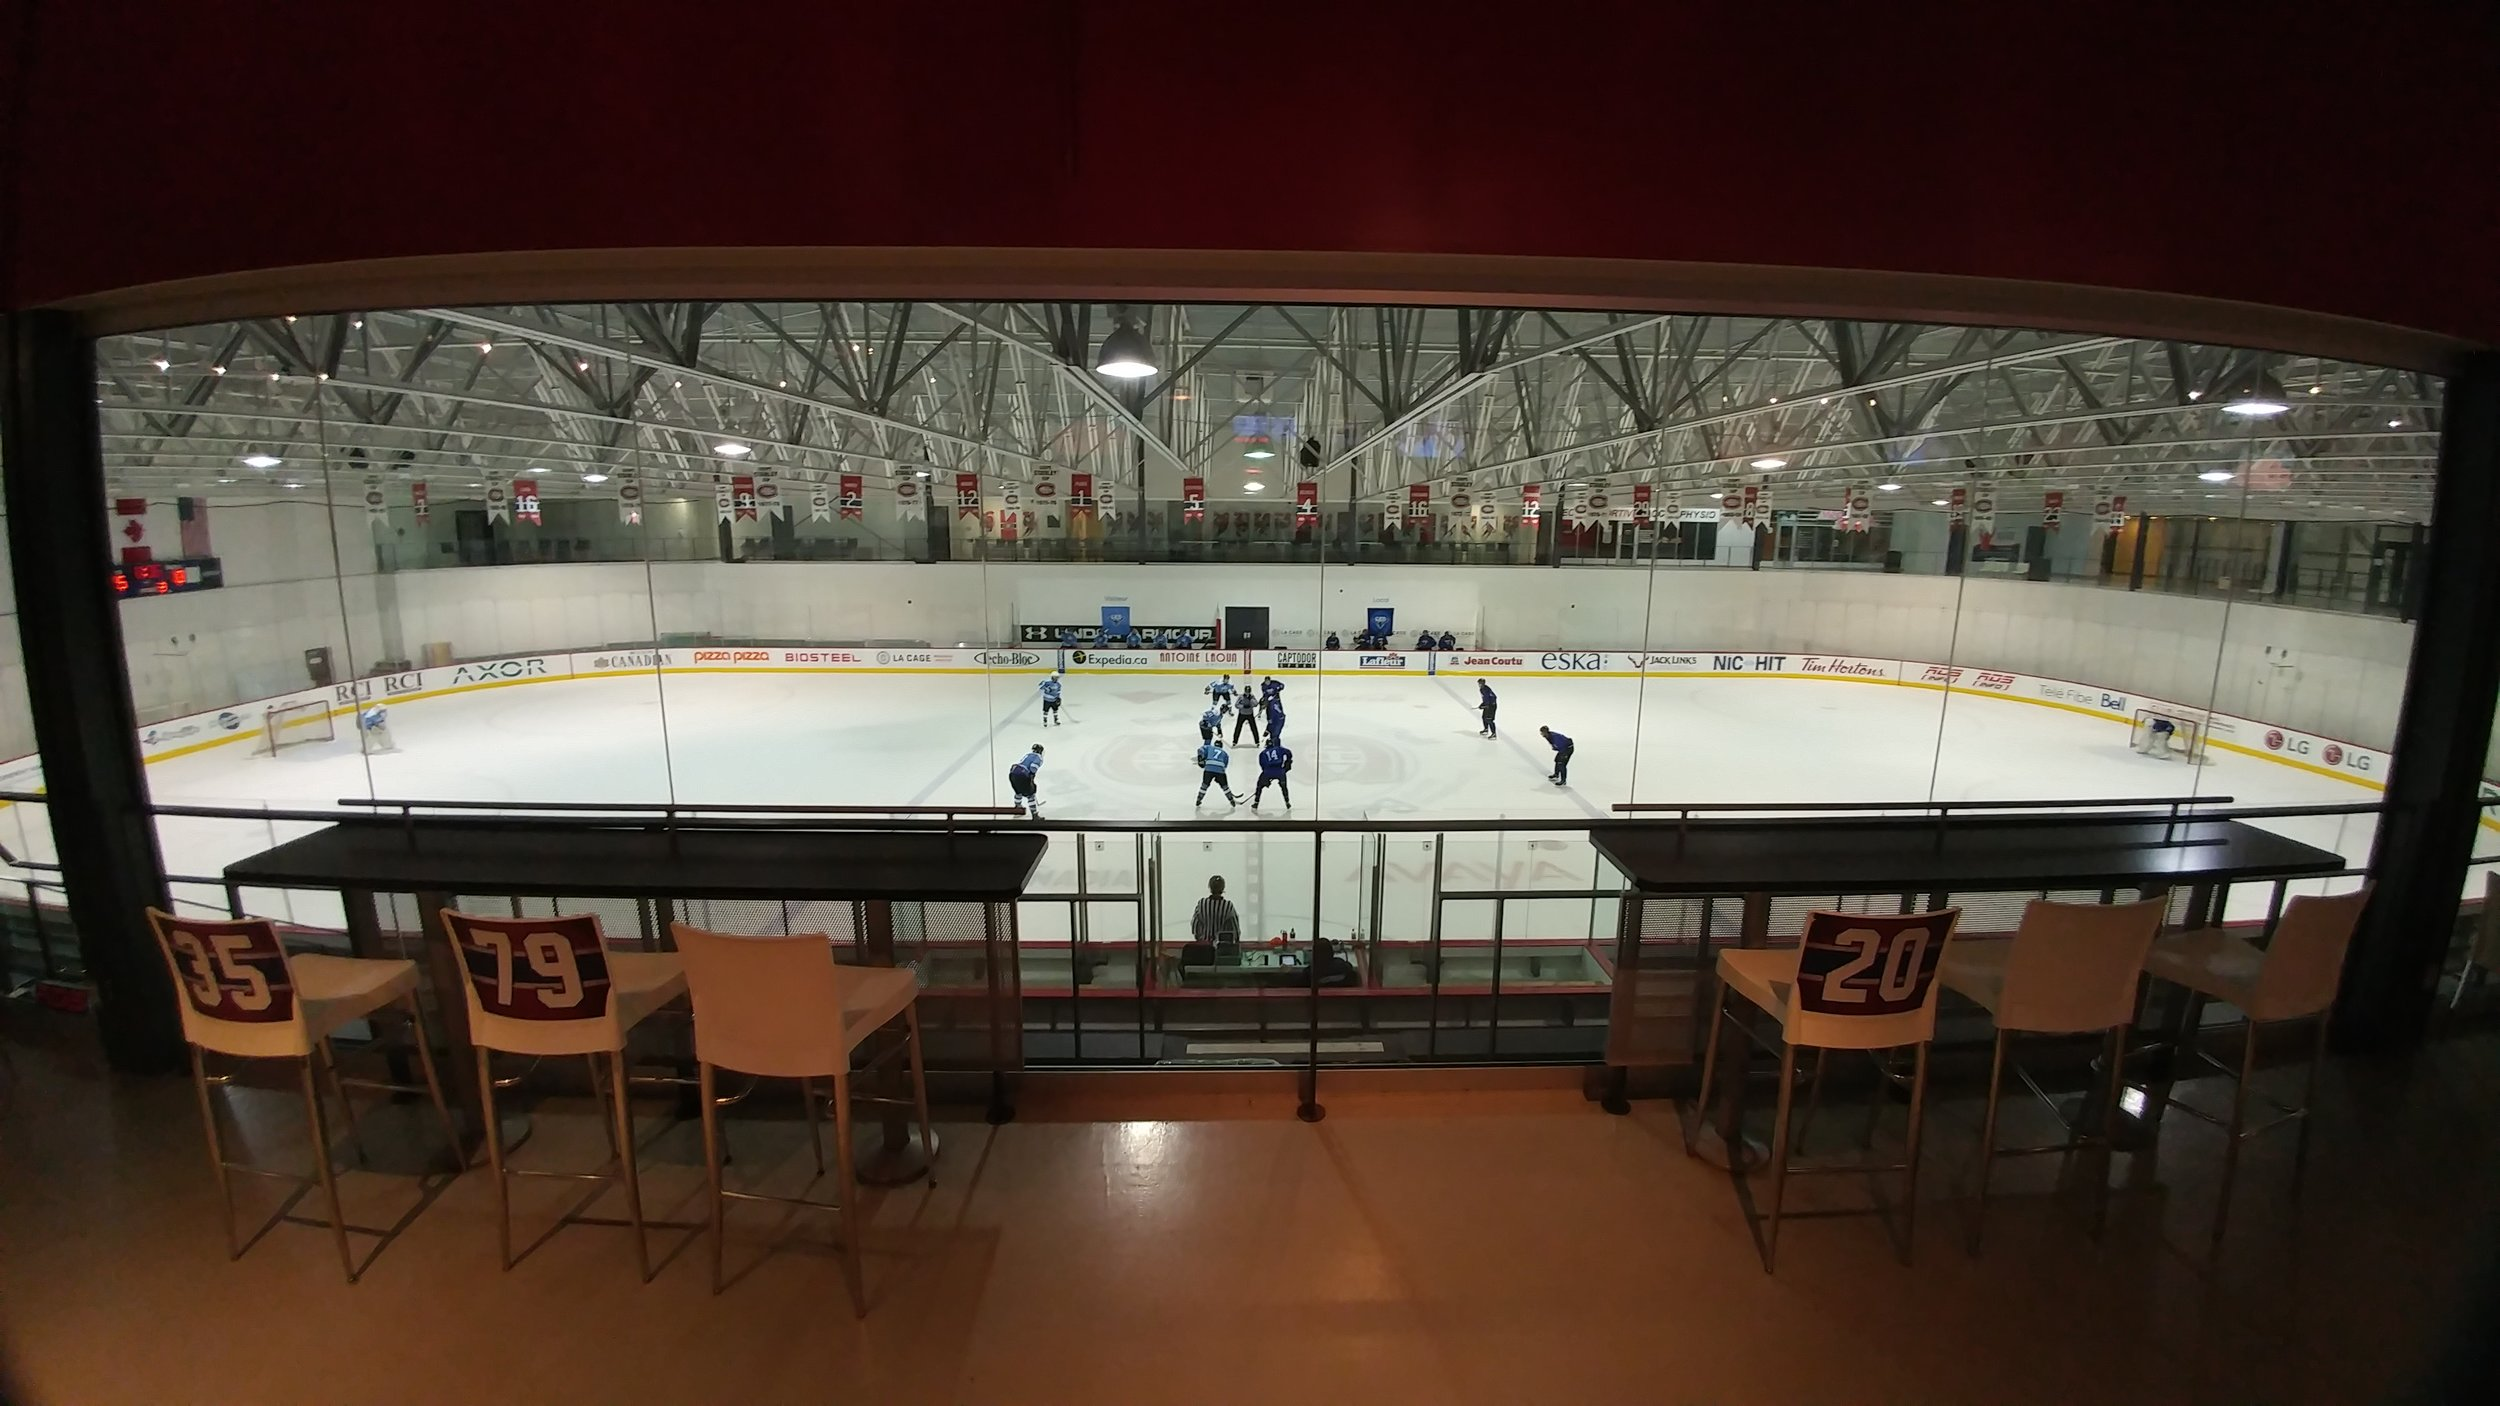 a look at our new INSTALLATIONS at the Bell sports somplex in BROSSARD (PHOTO CHRISTOPHE GRENON)